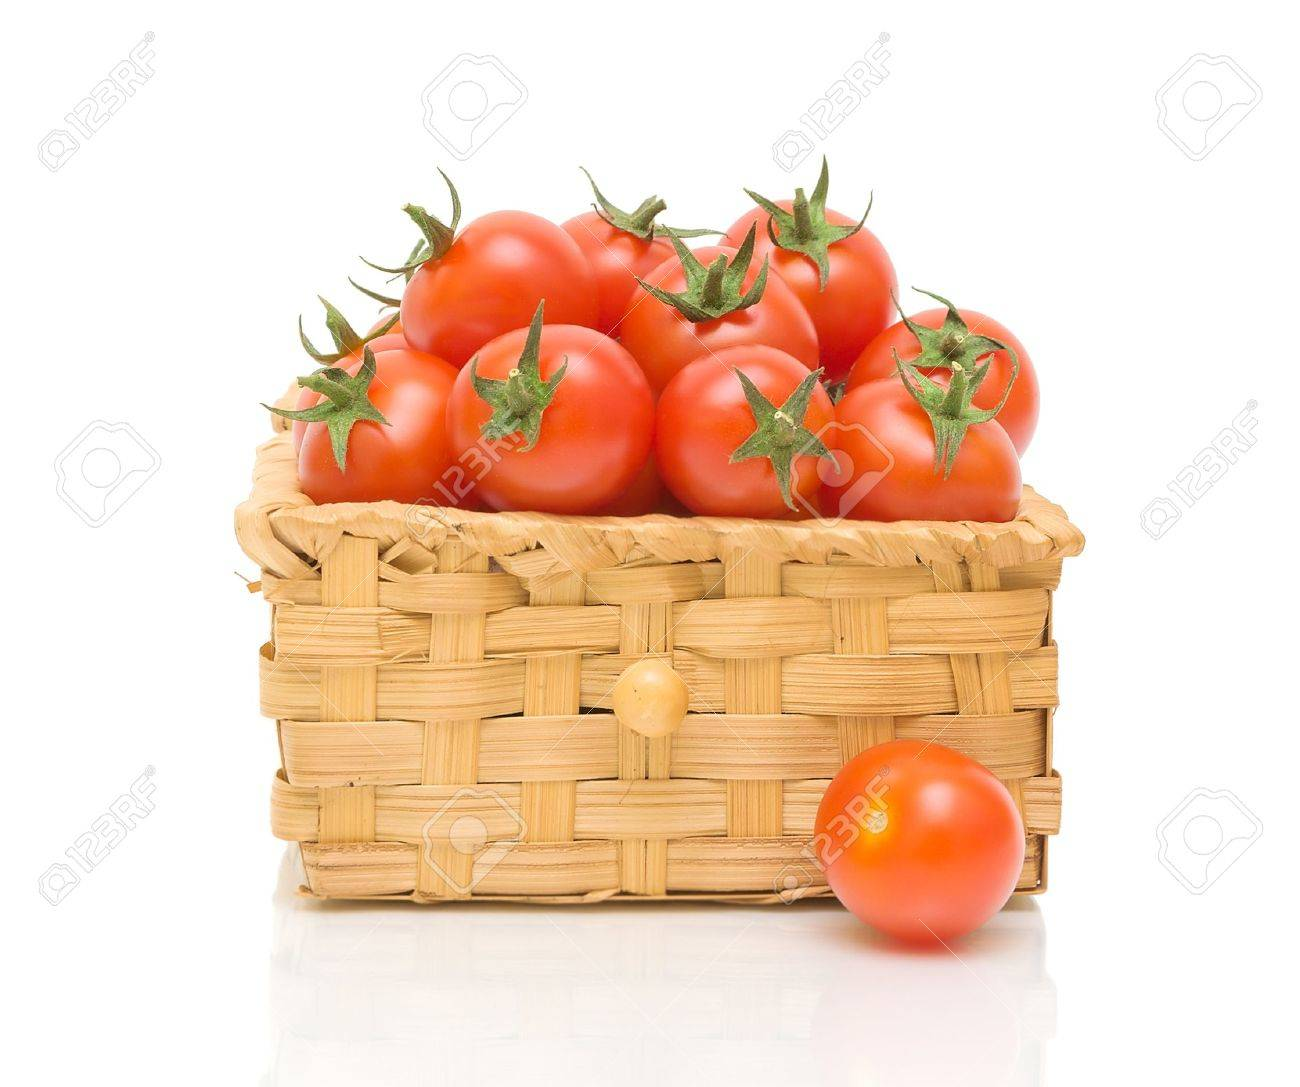 ripe tomatoes in a wicker basket isolated on white close-up of the reflection Stock Photo - 13845121